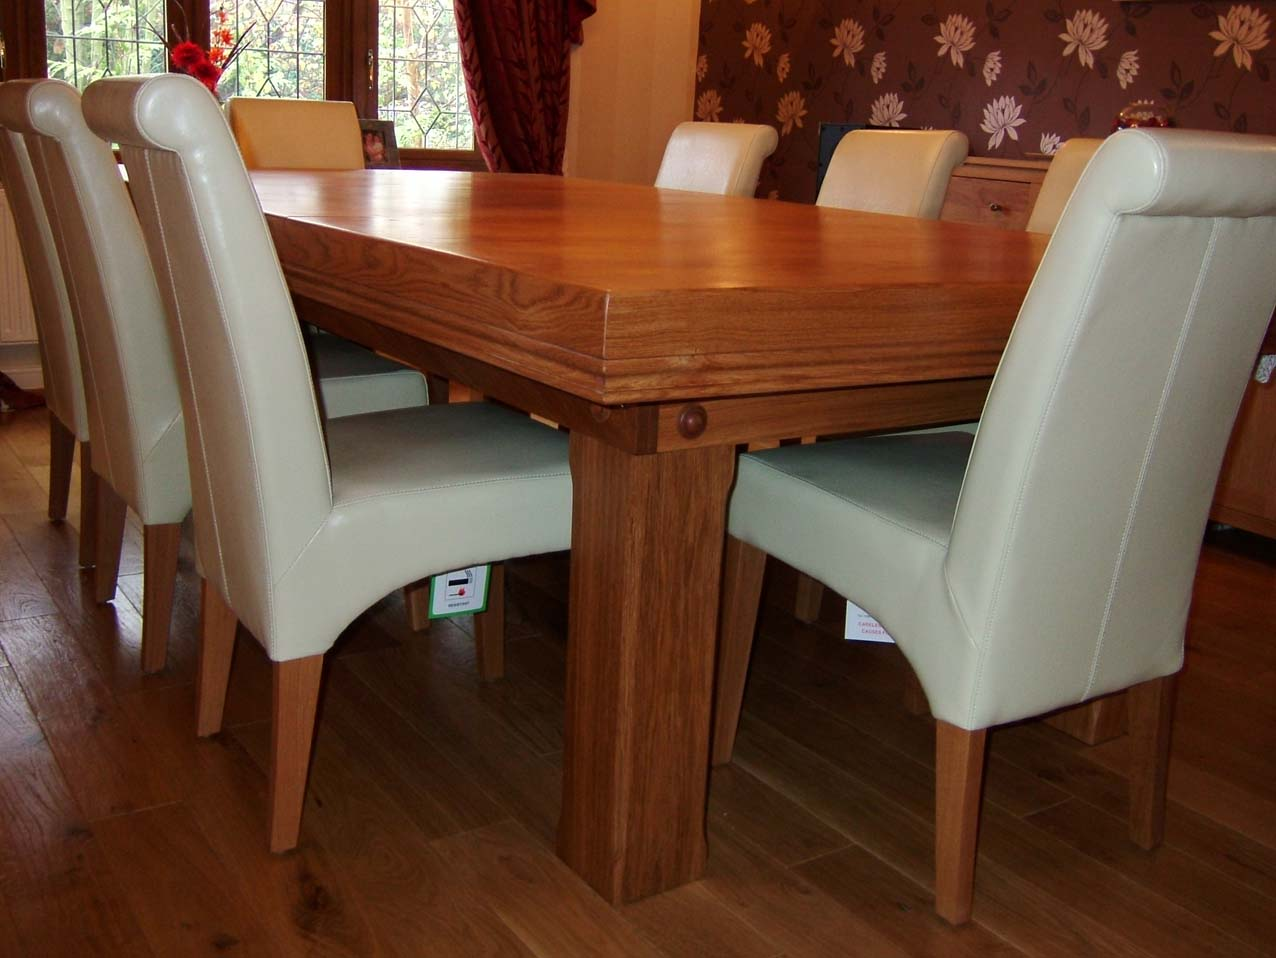 Superieur 7ft Oak Snooker Dining Table View · View